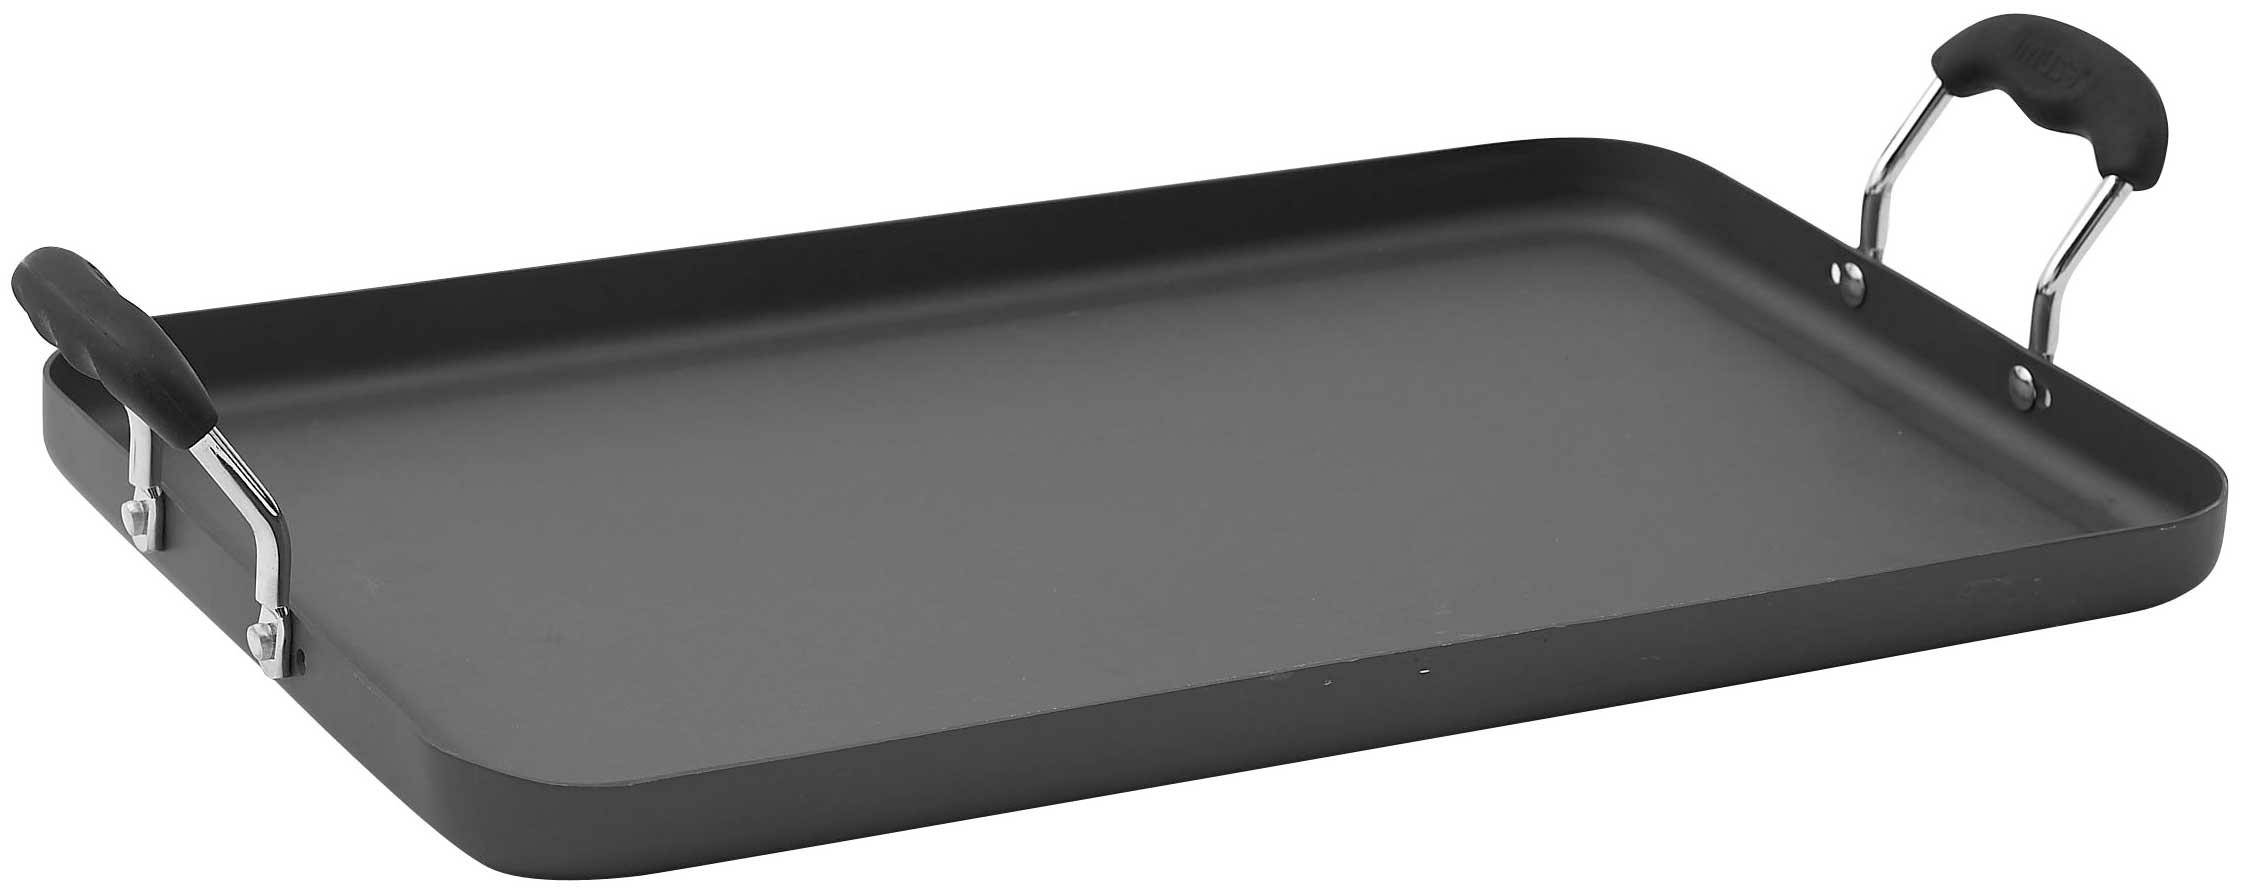 WINCO HAG-2012 Griddle, 19-1/2-Inch by 12-1/4-Inch, Hard Anodized Aluminum